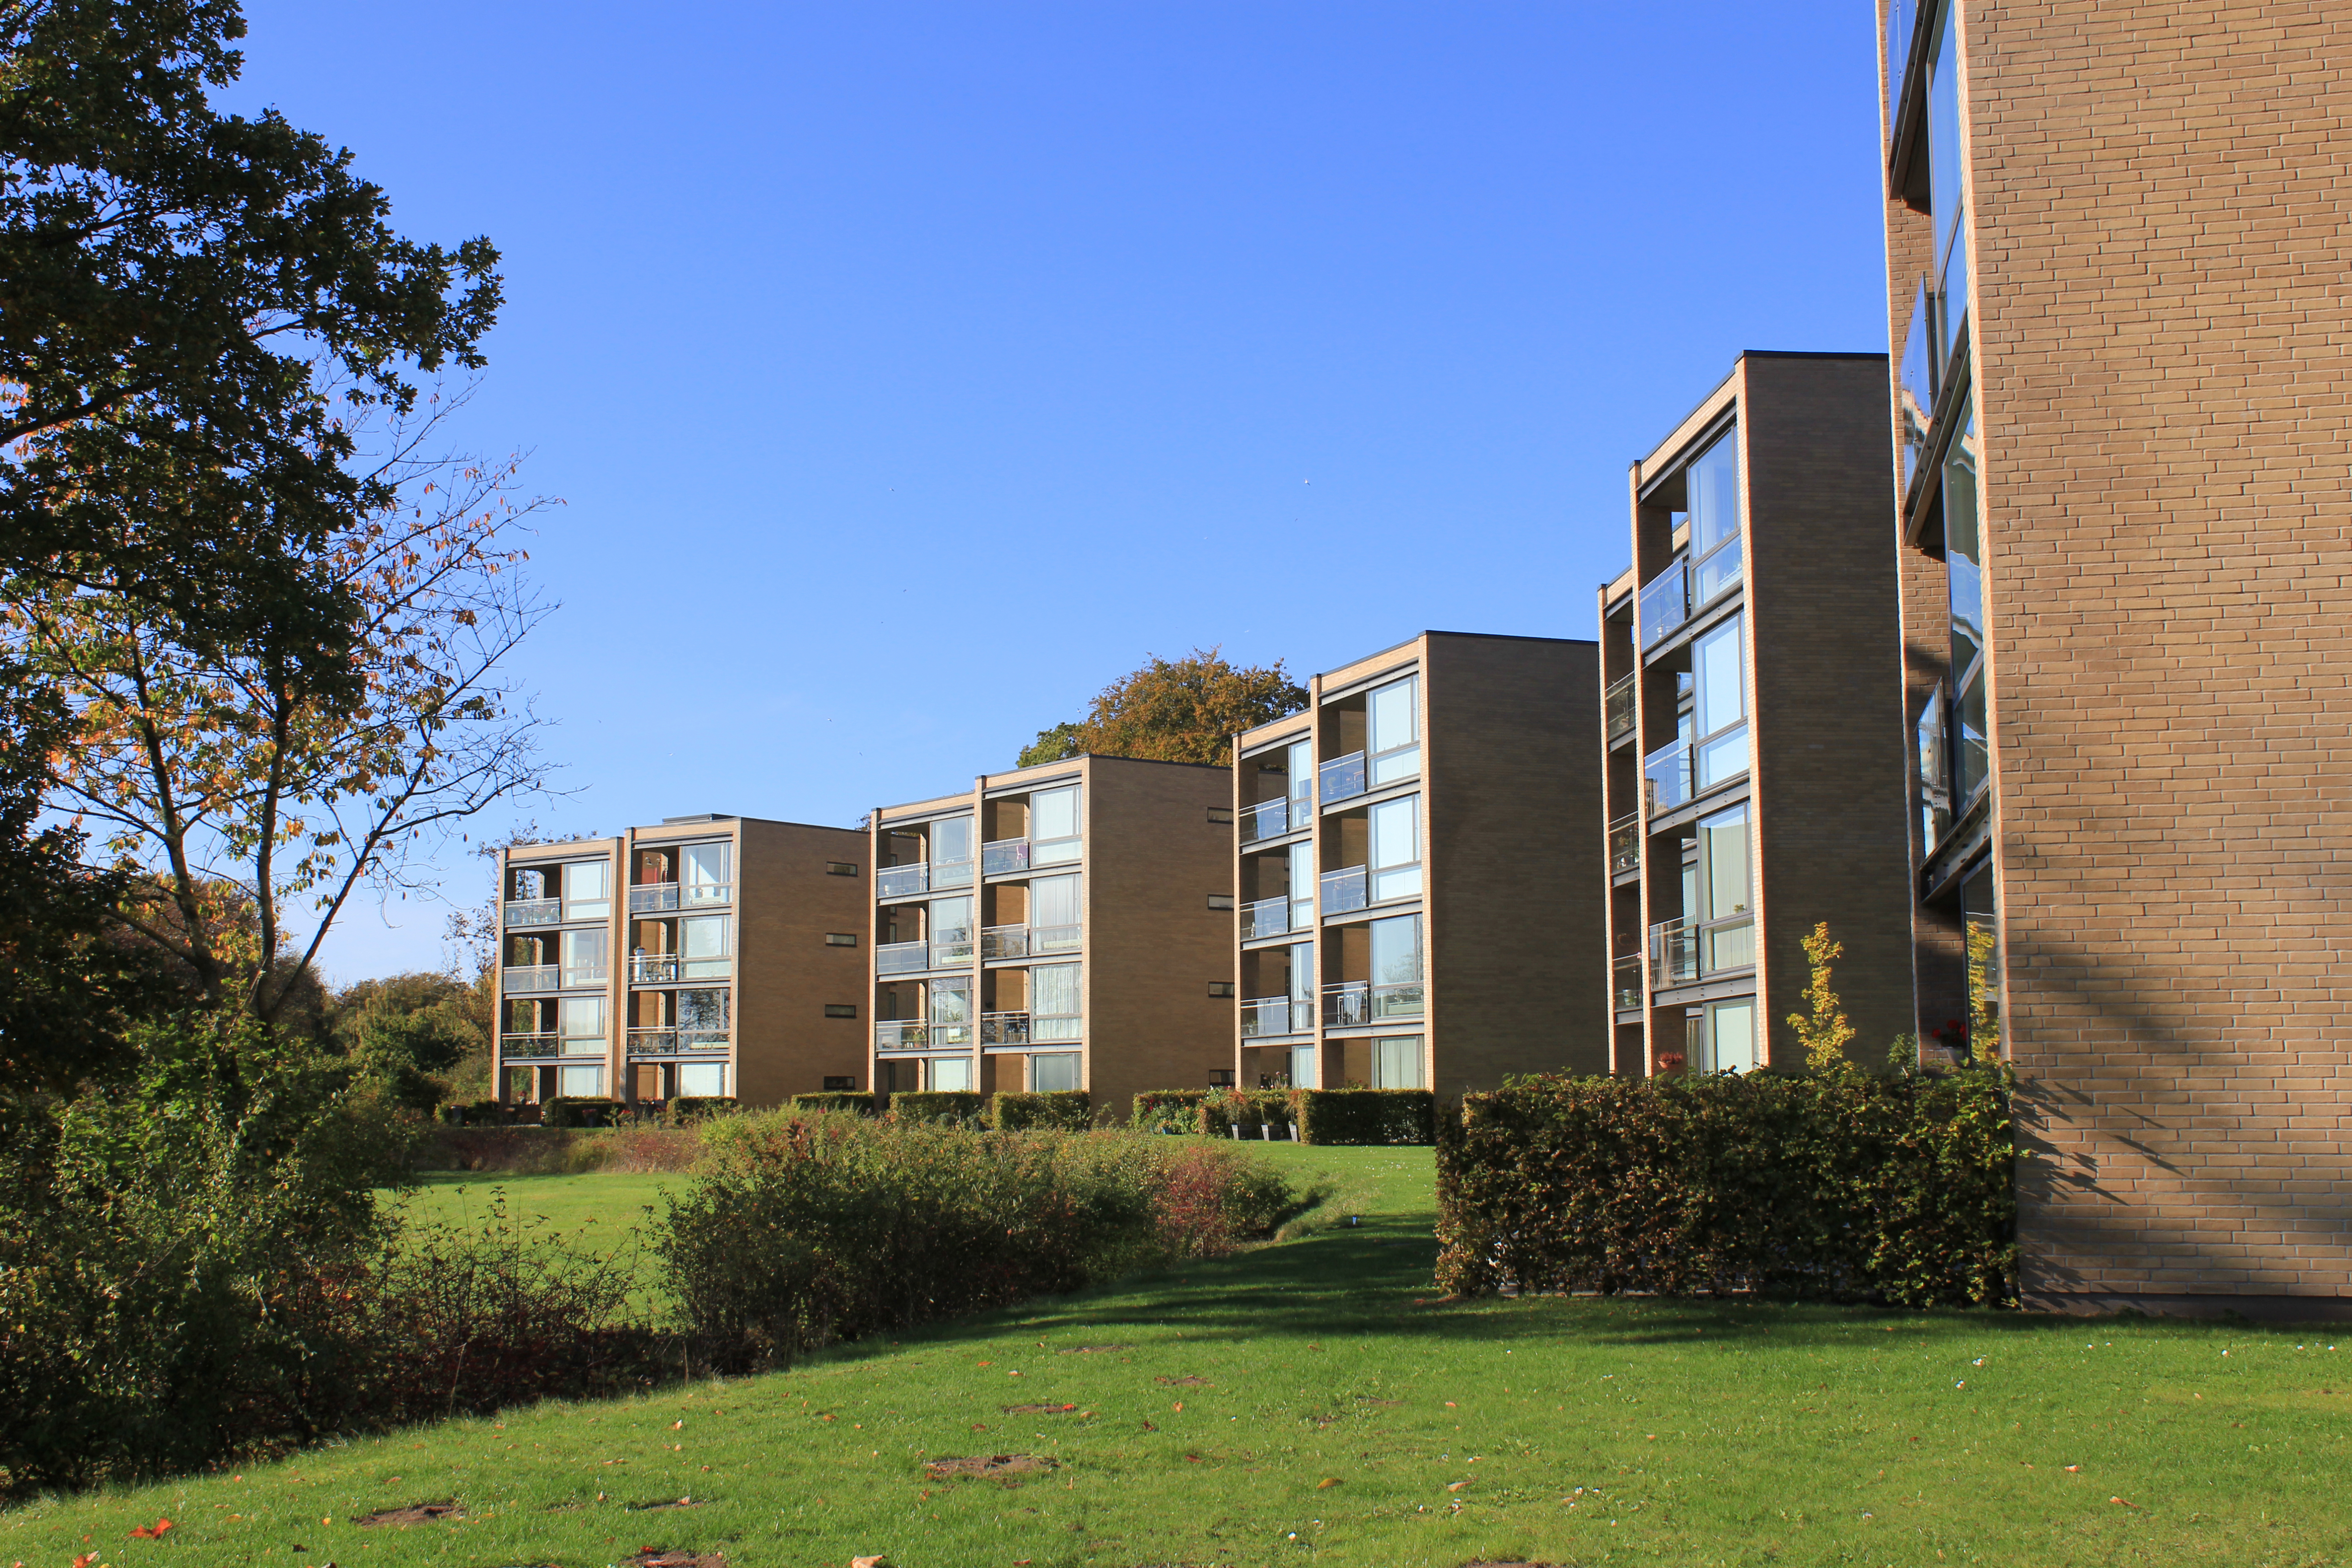 Appartment Complexes 28 Images New Apartment Complex